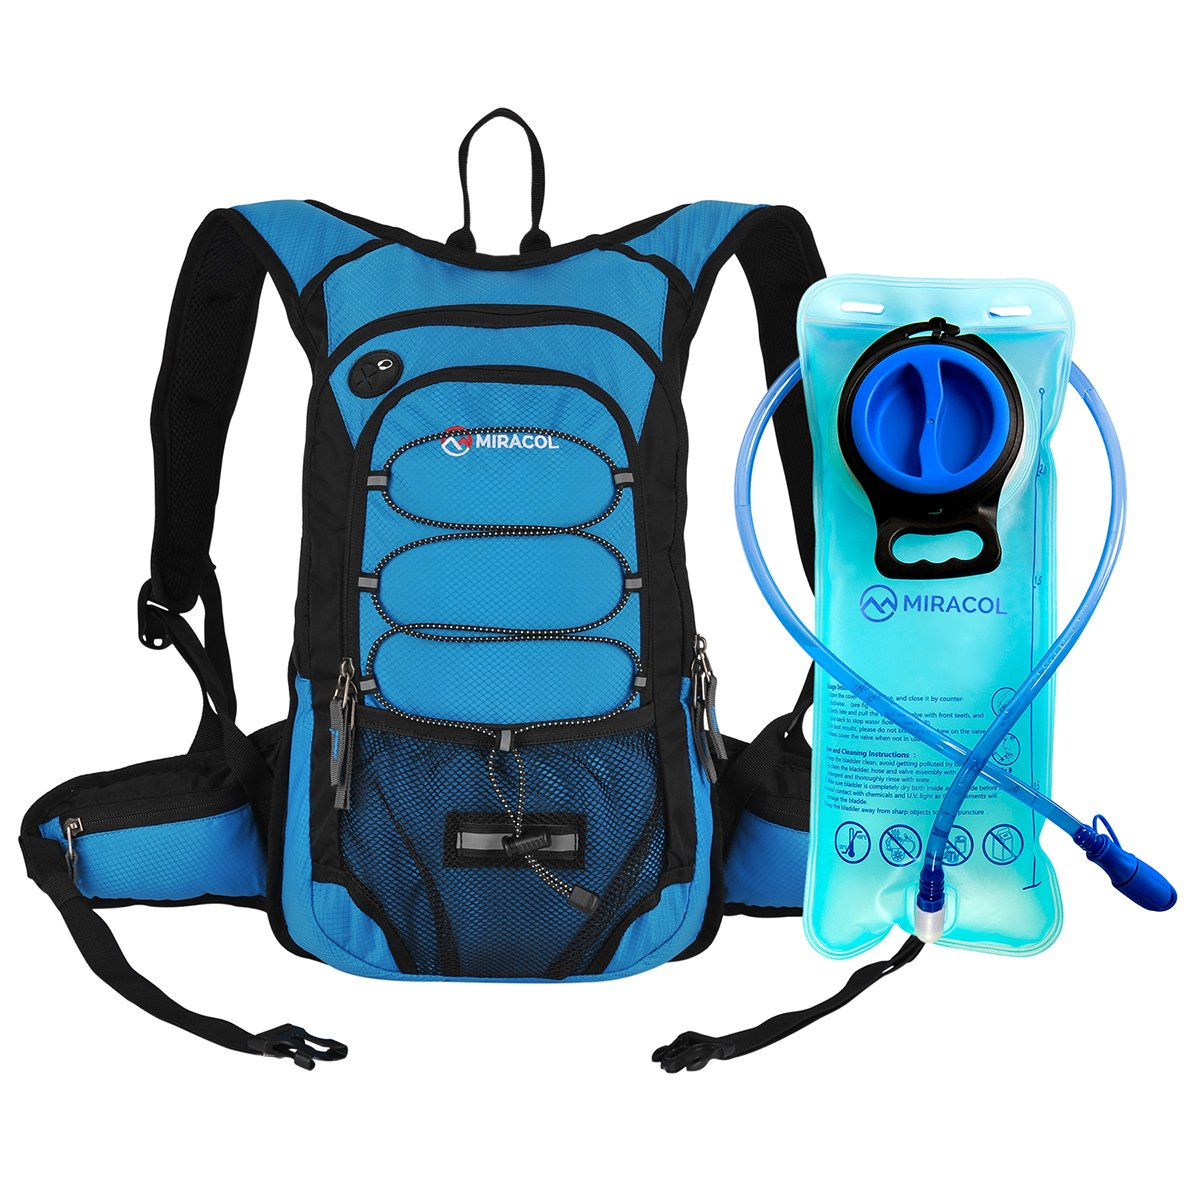 10 Best Hydration Pack For Hiking And Camping in 2019